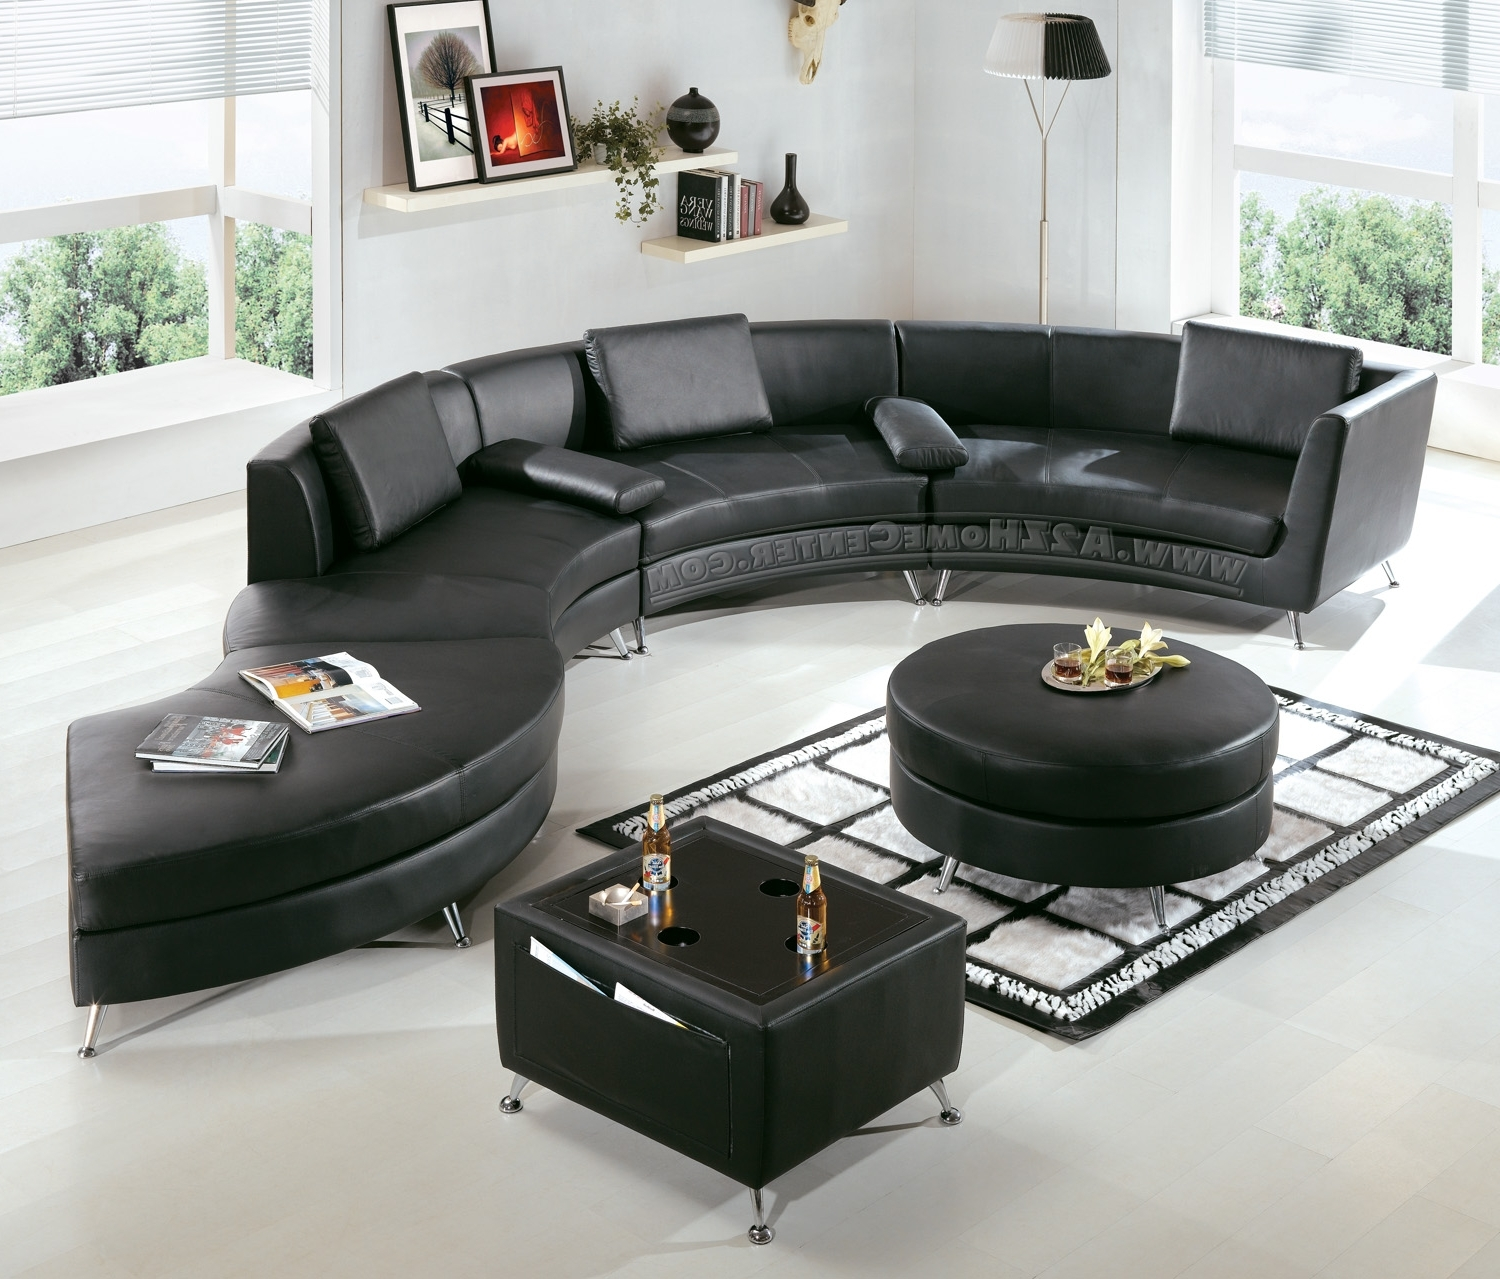 Kitchener Sectional Sofas For Fashionable Coffee Table : Sofa Set Toronto Best Sectionals Toronto Buy Sofa (View 5 of 15)